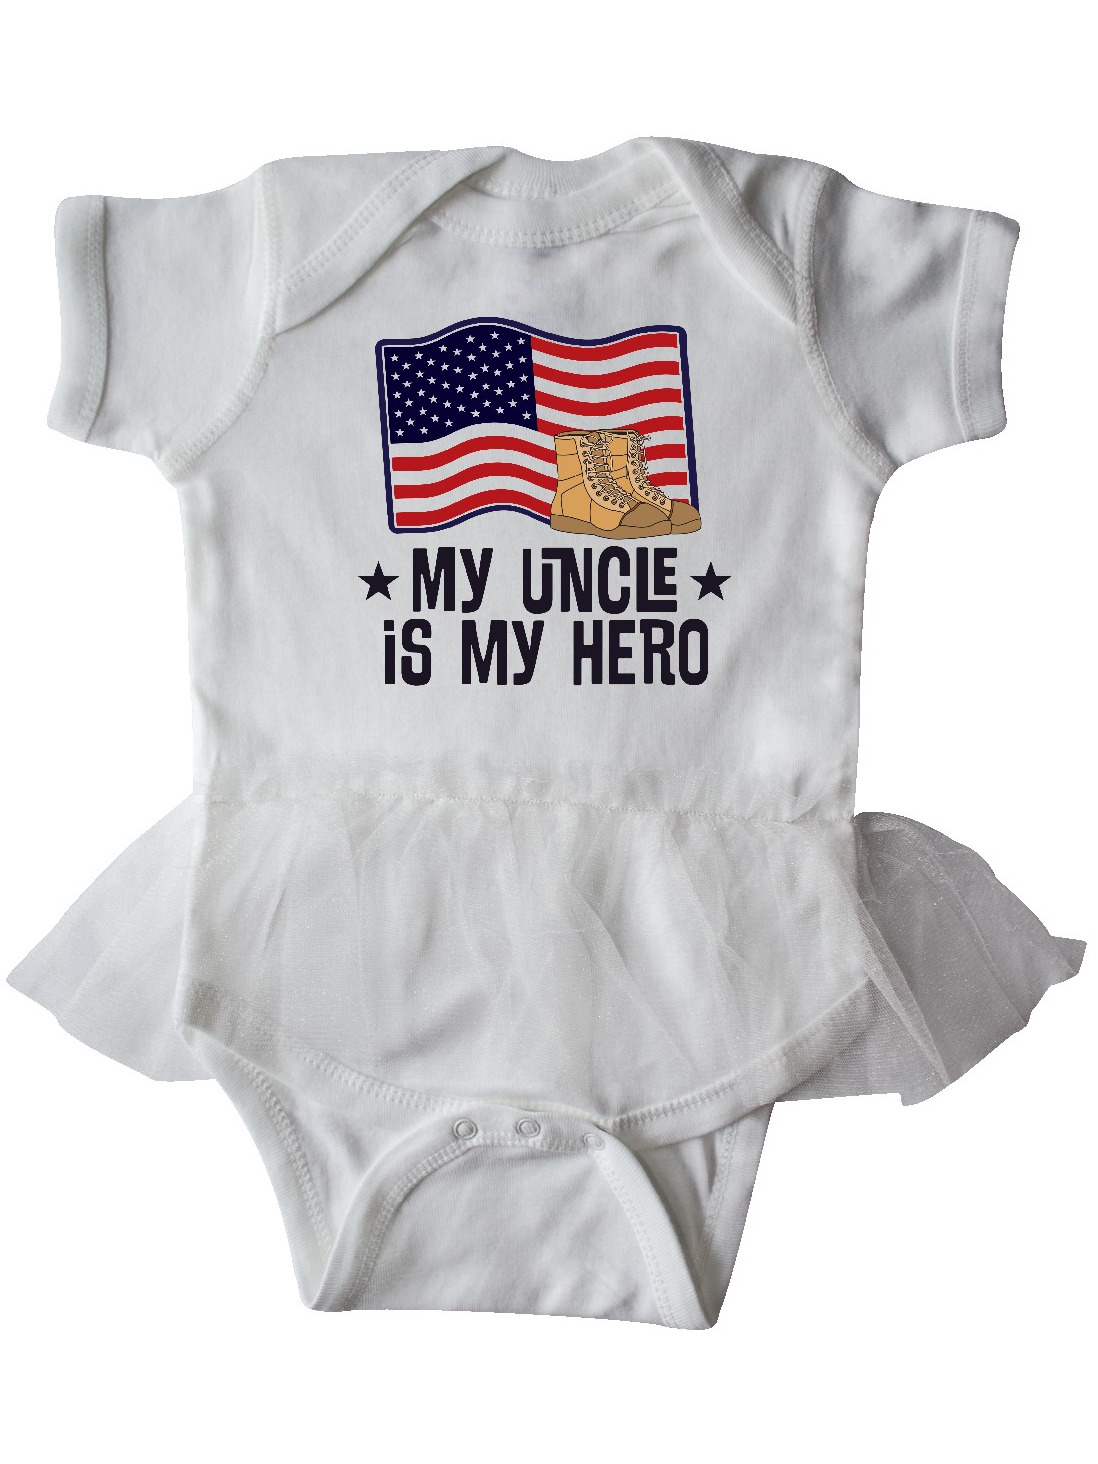 Baby Girls Round Collar Soldiers Veterans USA Flag Long Sleeve Playsuit 100/% Cotton Suit 6-24 Months